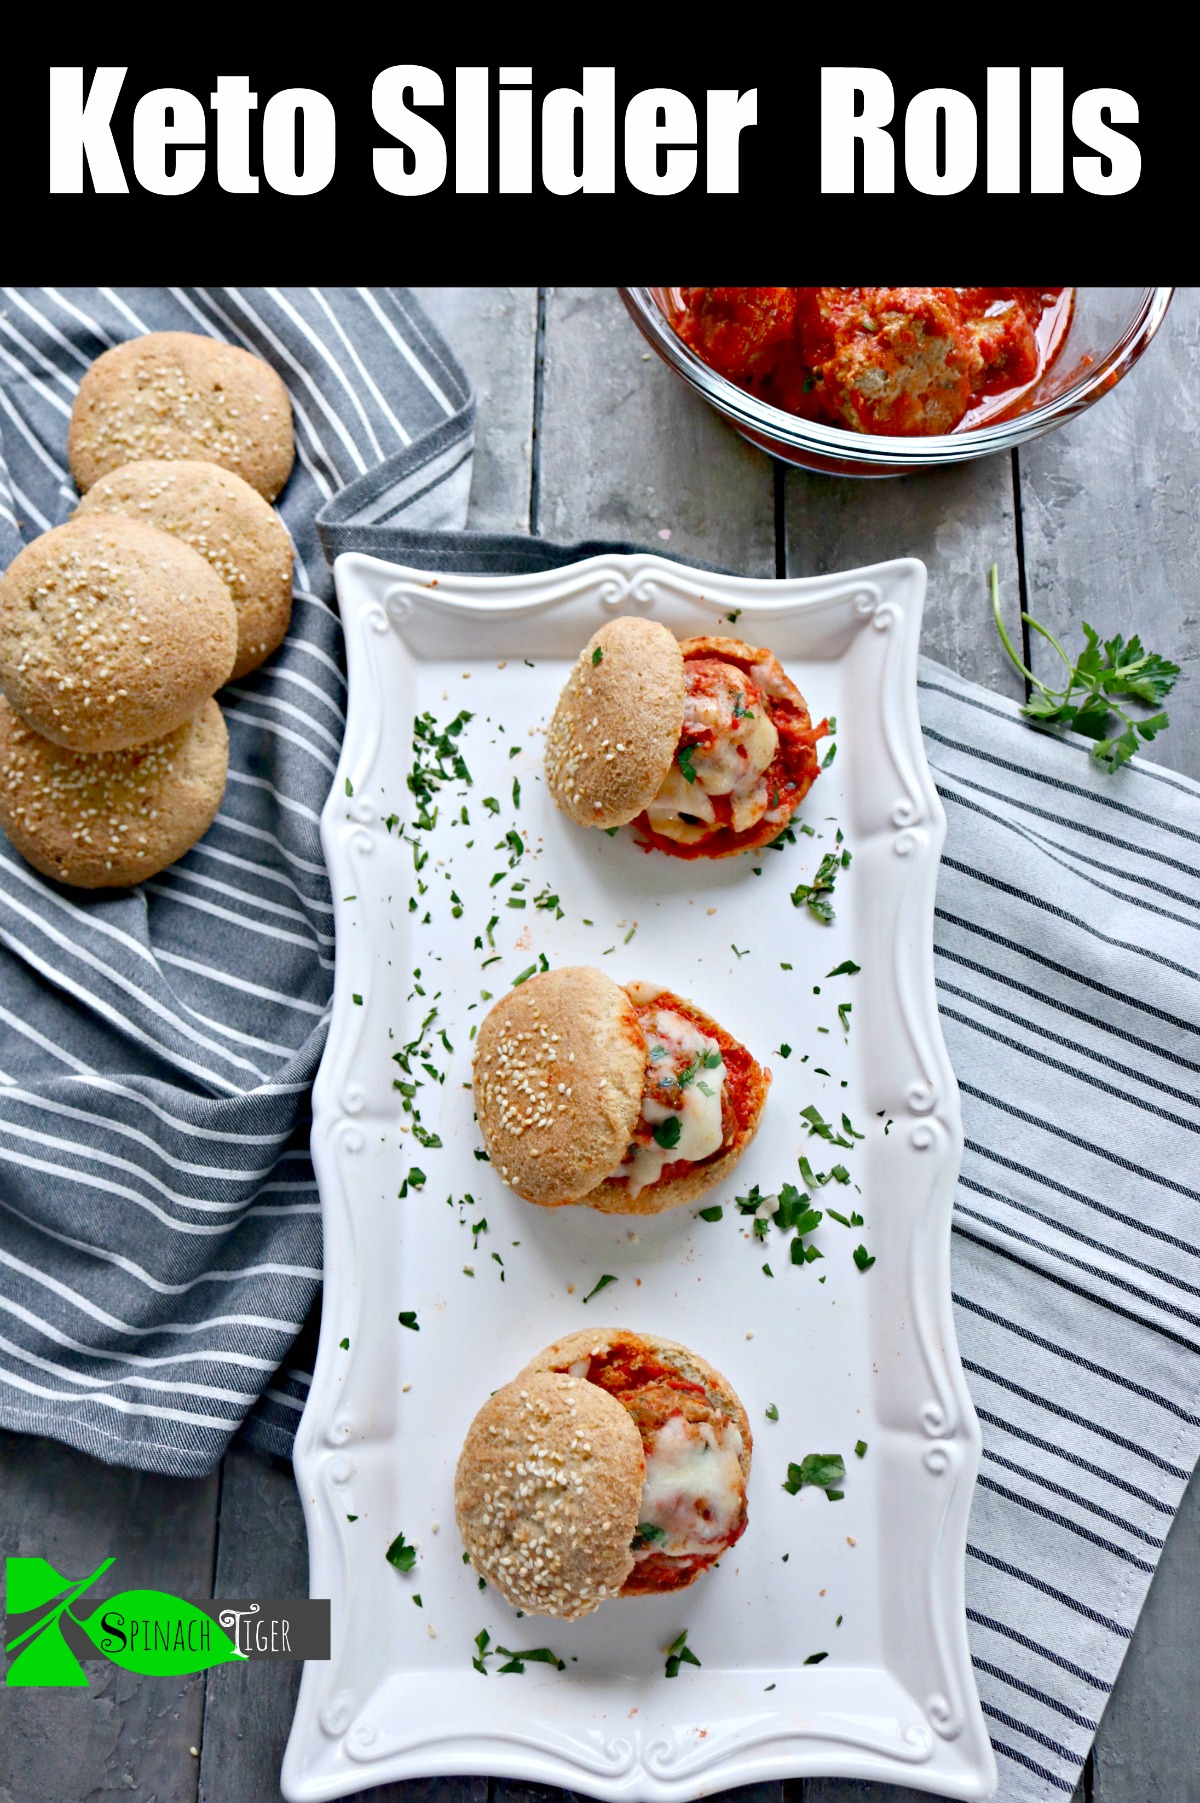 Keto Meatballs Make Great Sliders. Grain Free all beef meatballs, tucked into keto rolls for an keto old school Italian slider. #ketomeatballs #ketomeatballsliders #ketoItalianrecipe #spinachtiger via @angelaroberts